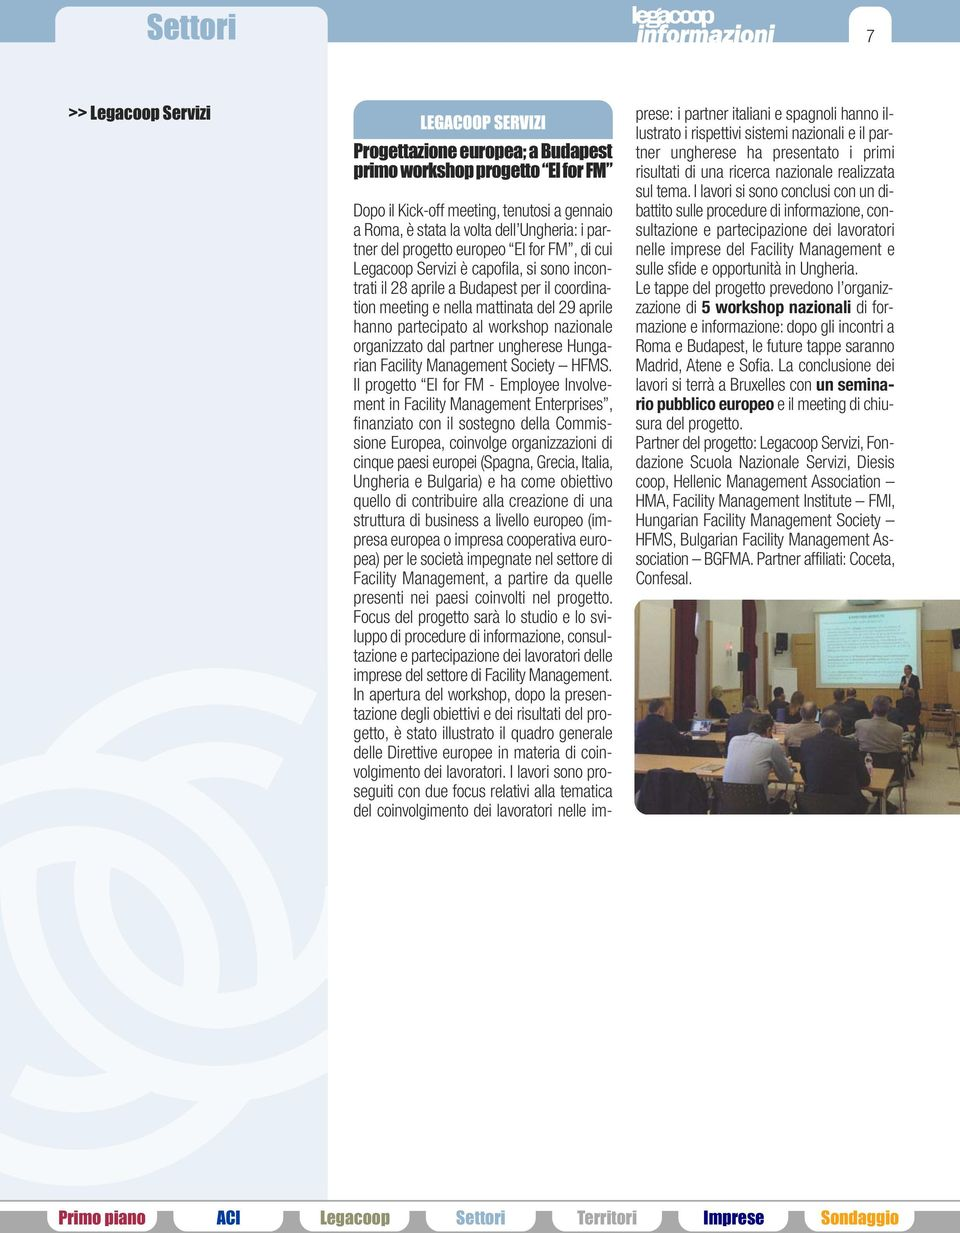 al workshop nazionale organizzato dal partner ungherese Hungarian Facility Management Society HFMS.